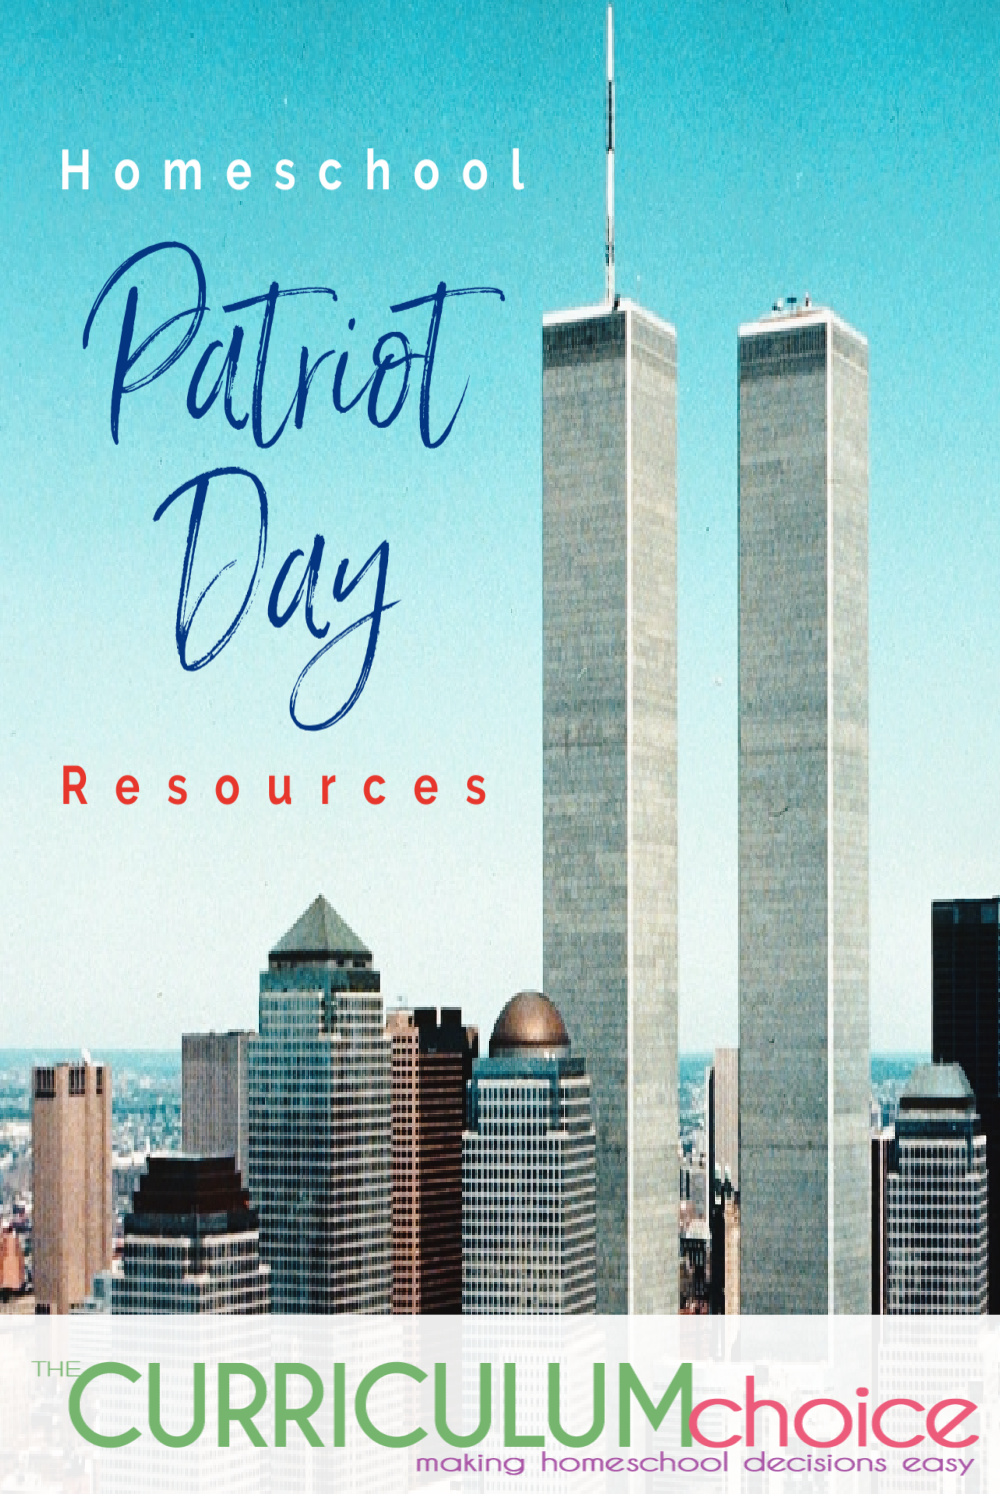 Homeschool Patriot Day Resources - A collection of Homeschool Patriot Day Resources both FREE and low cost, including books, movies, printables, online resources, and art! From The Curriculum Choice